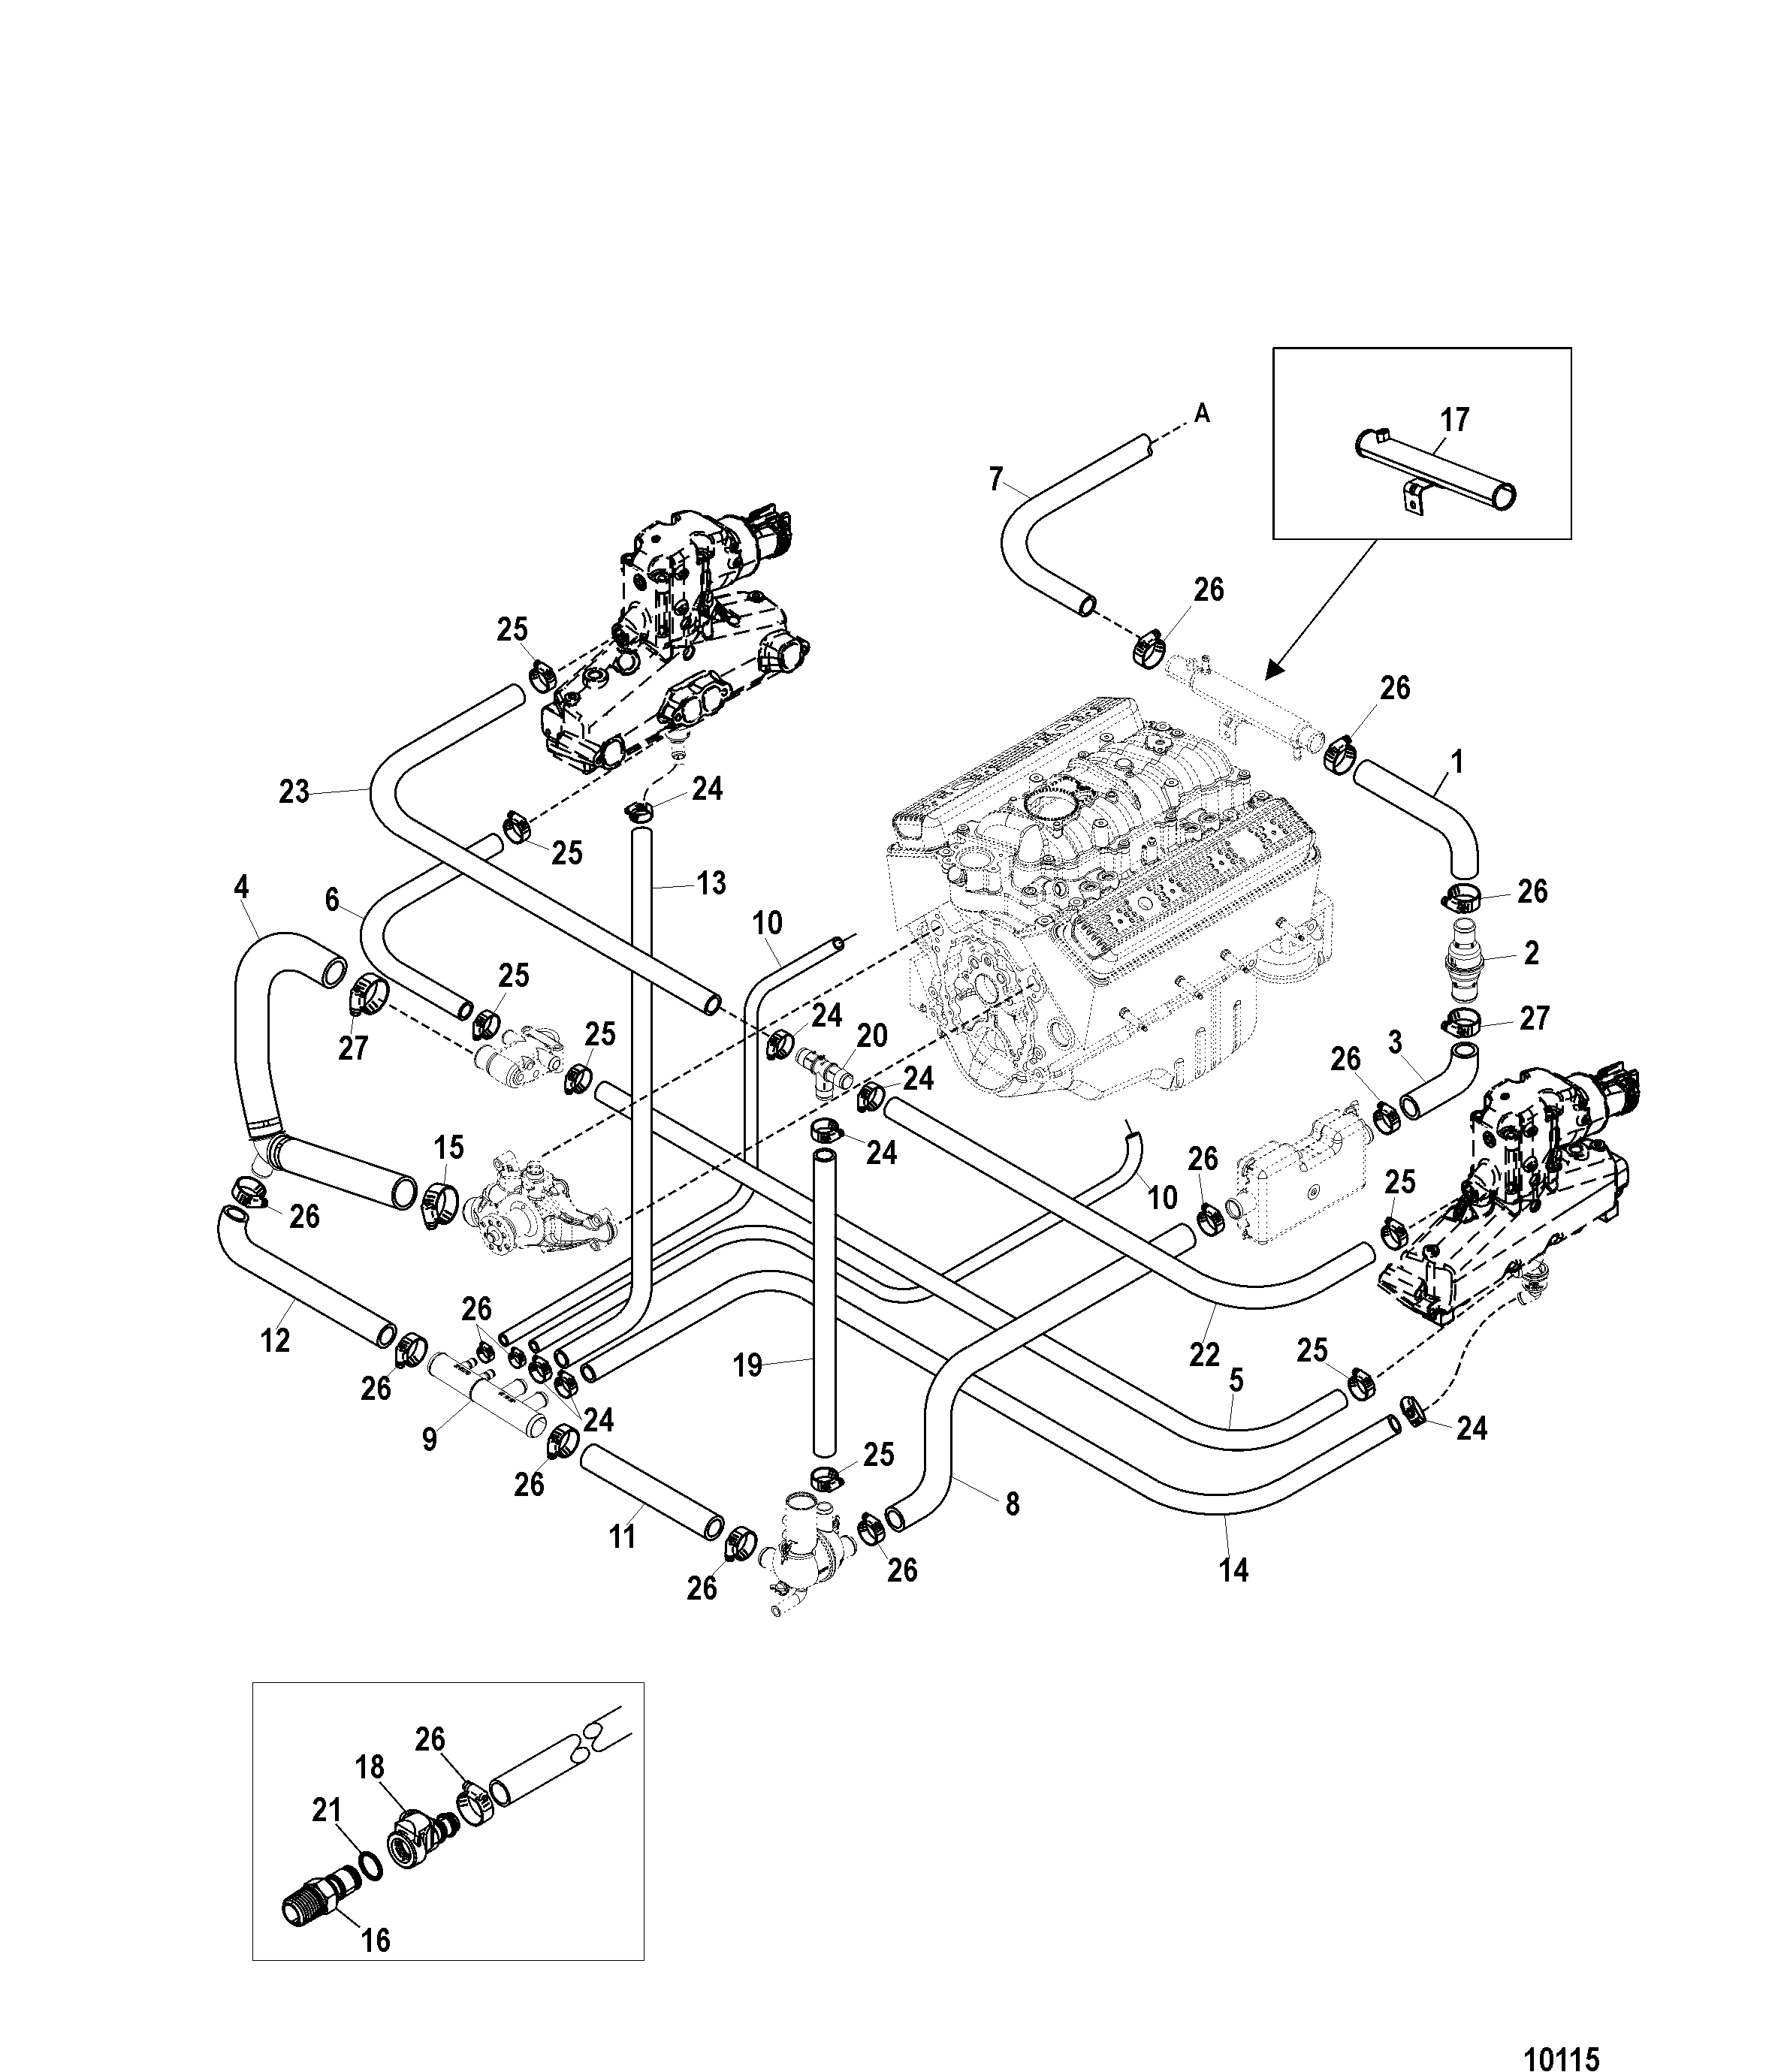 Mercruiser 43 Wiring Diagram Charging System Trusted 4 3 Liter 1992 5 7 Cooling Basic Guide U2022 1986 Engine